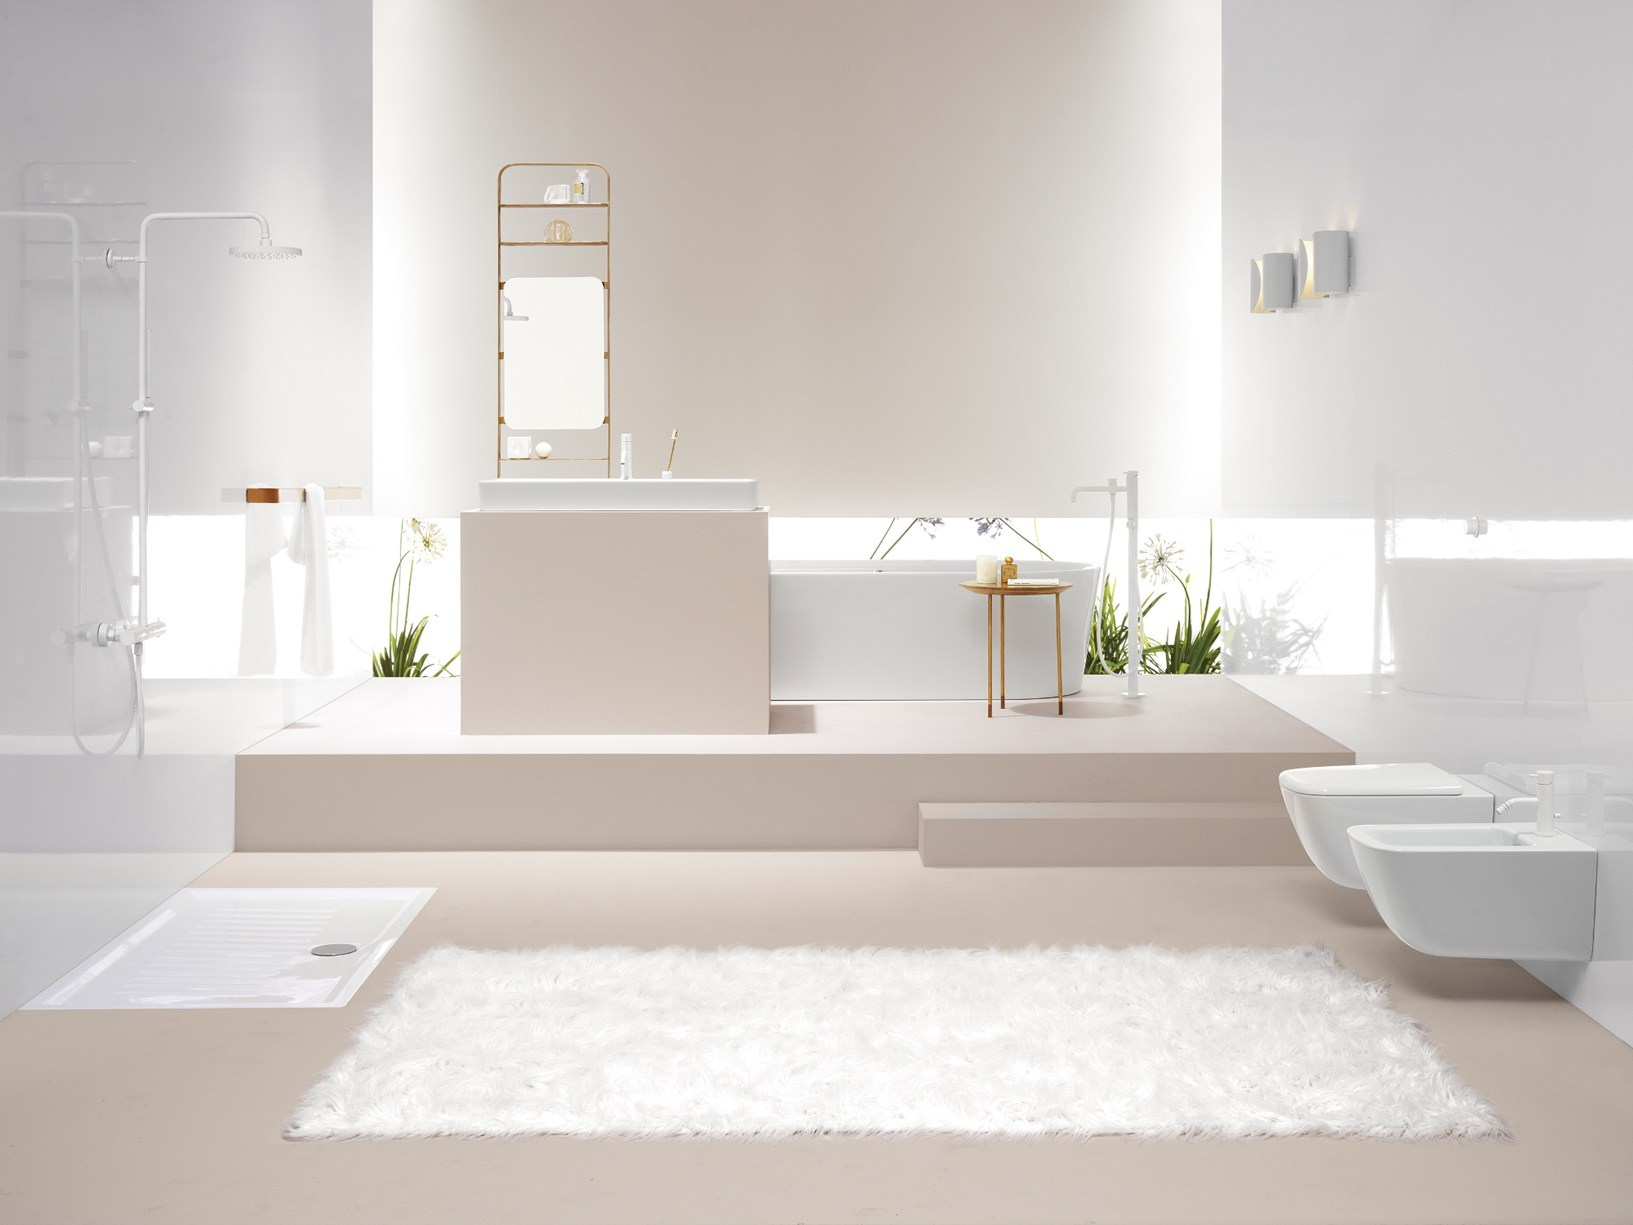 Update your bathroom with these 5 stylish accessories